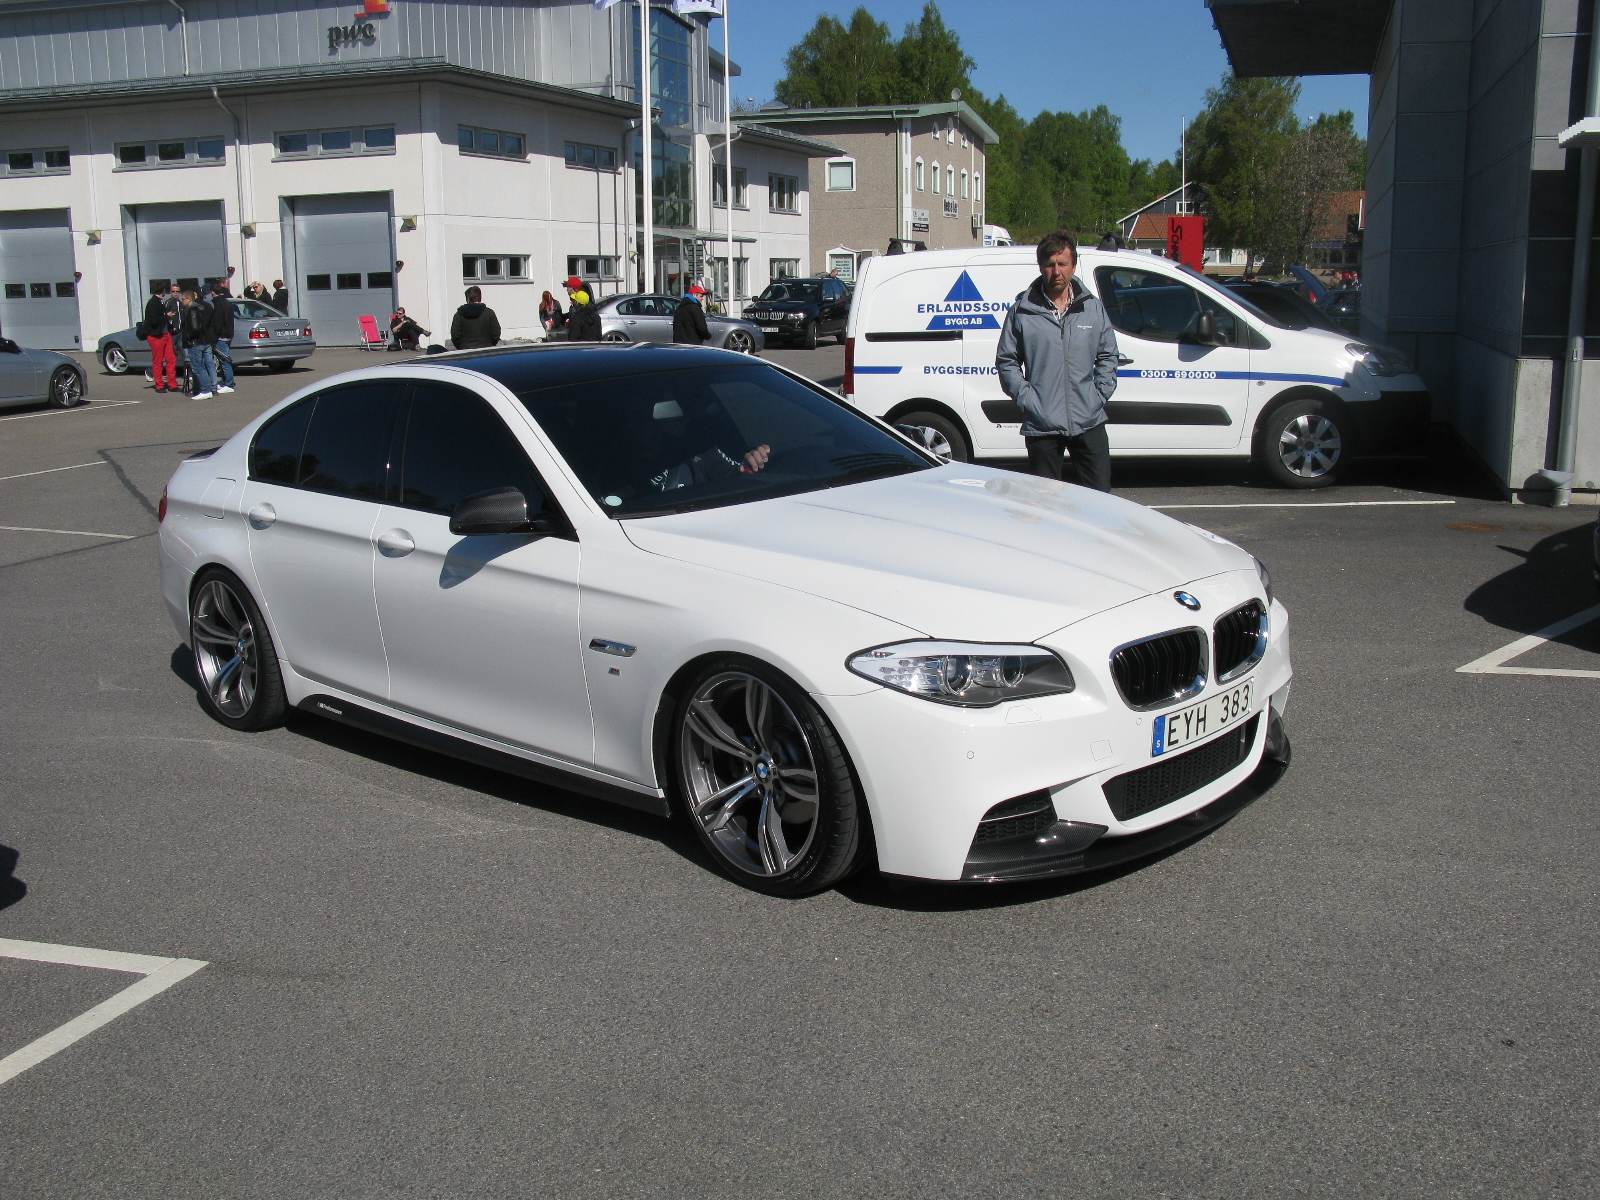 file bmw 520d m sport f10 13900677889 jpg wikimedia commons. Black Bedroom Furniture Sets. Home Design Ideas